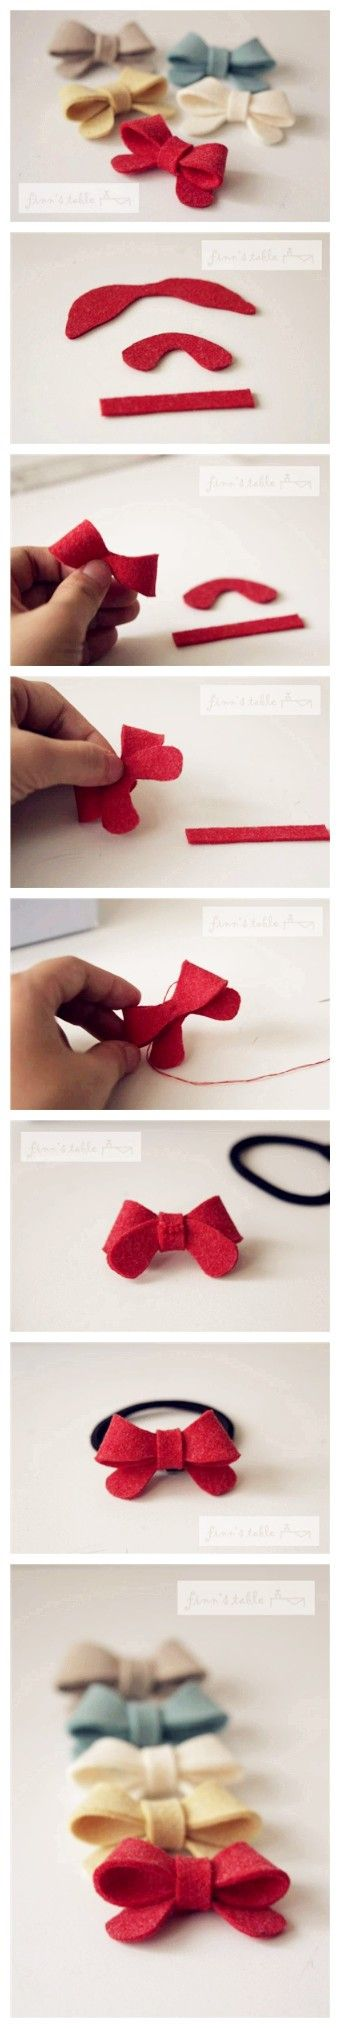 Little felt bows- MUST make.Hairbows, Bow Tutorial, Bows Ties, Bows Tutorials, Hair Ties, Hair Bows, Felt Bows, Diy, Crafts